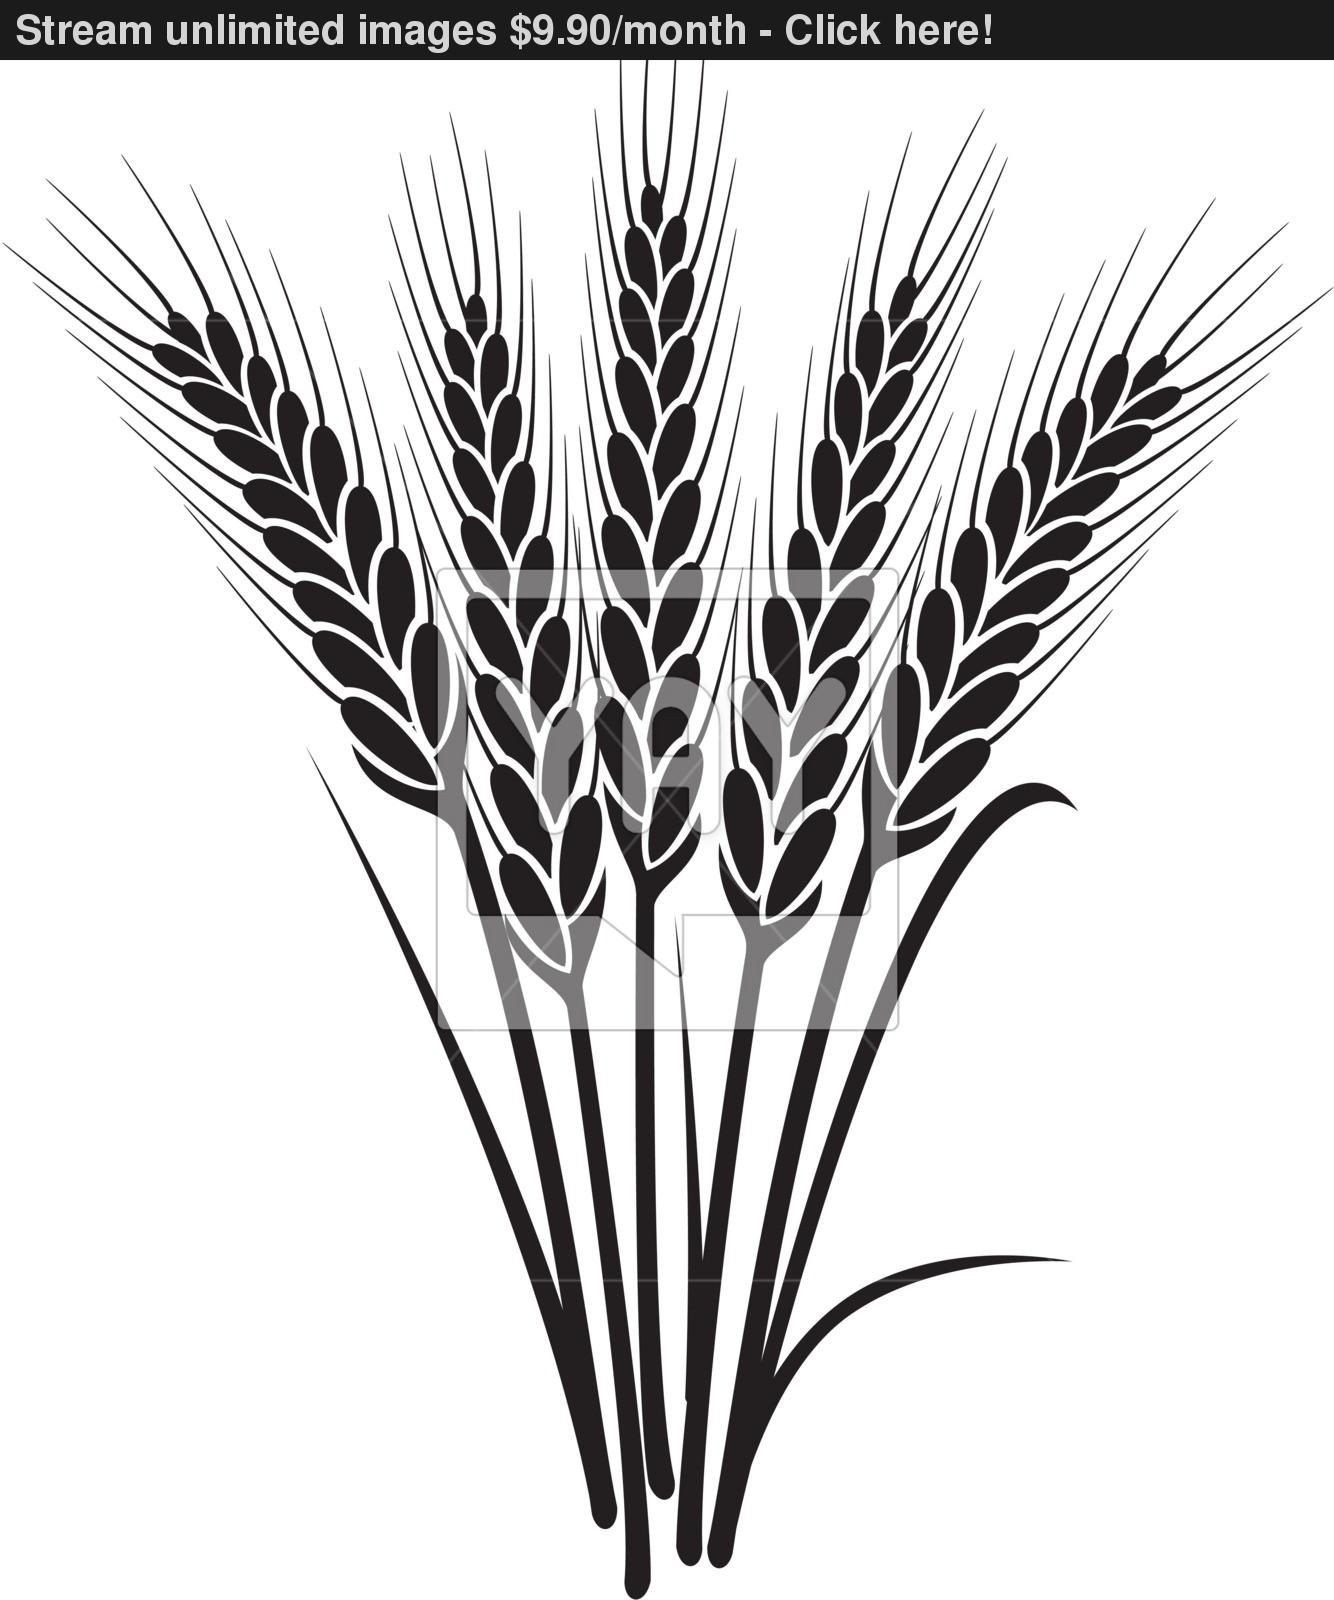 Wheat Plant Drawing At Getdrawings